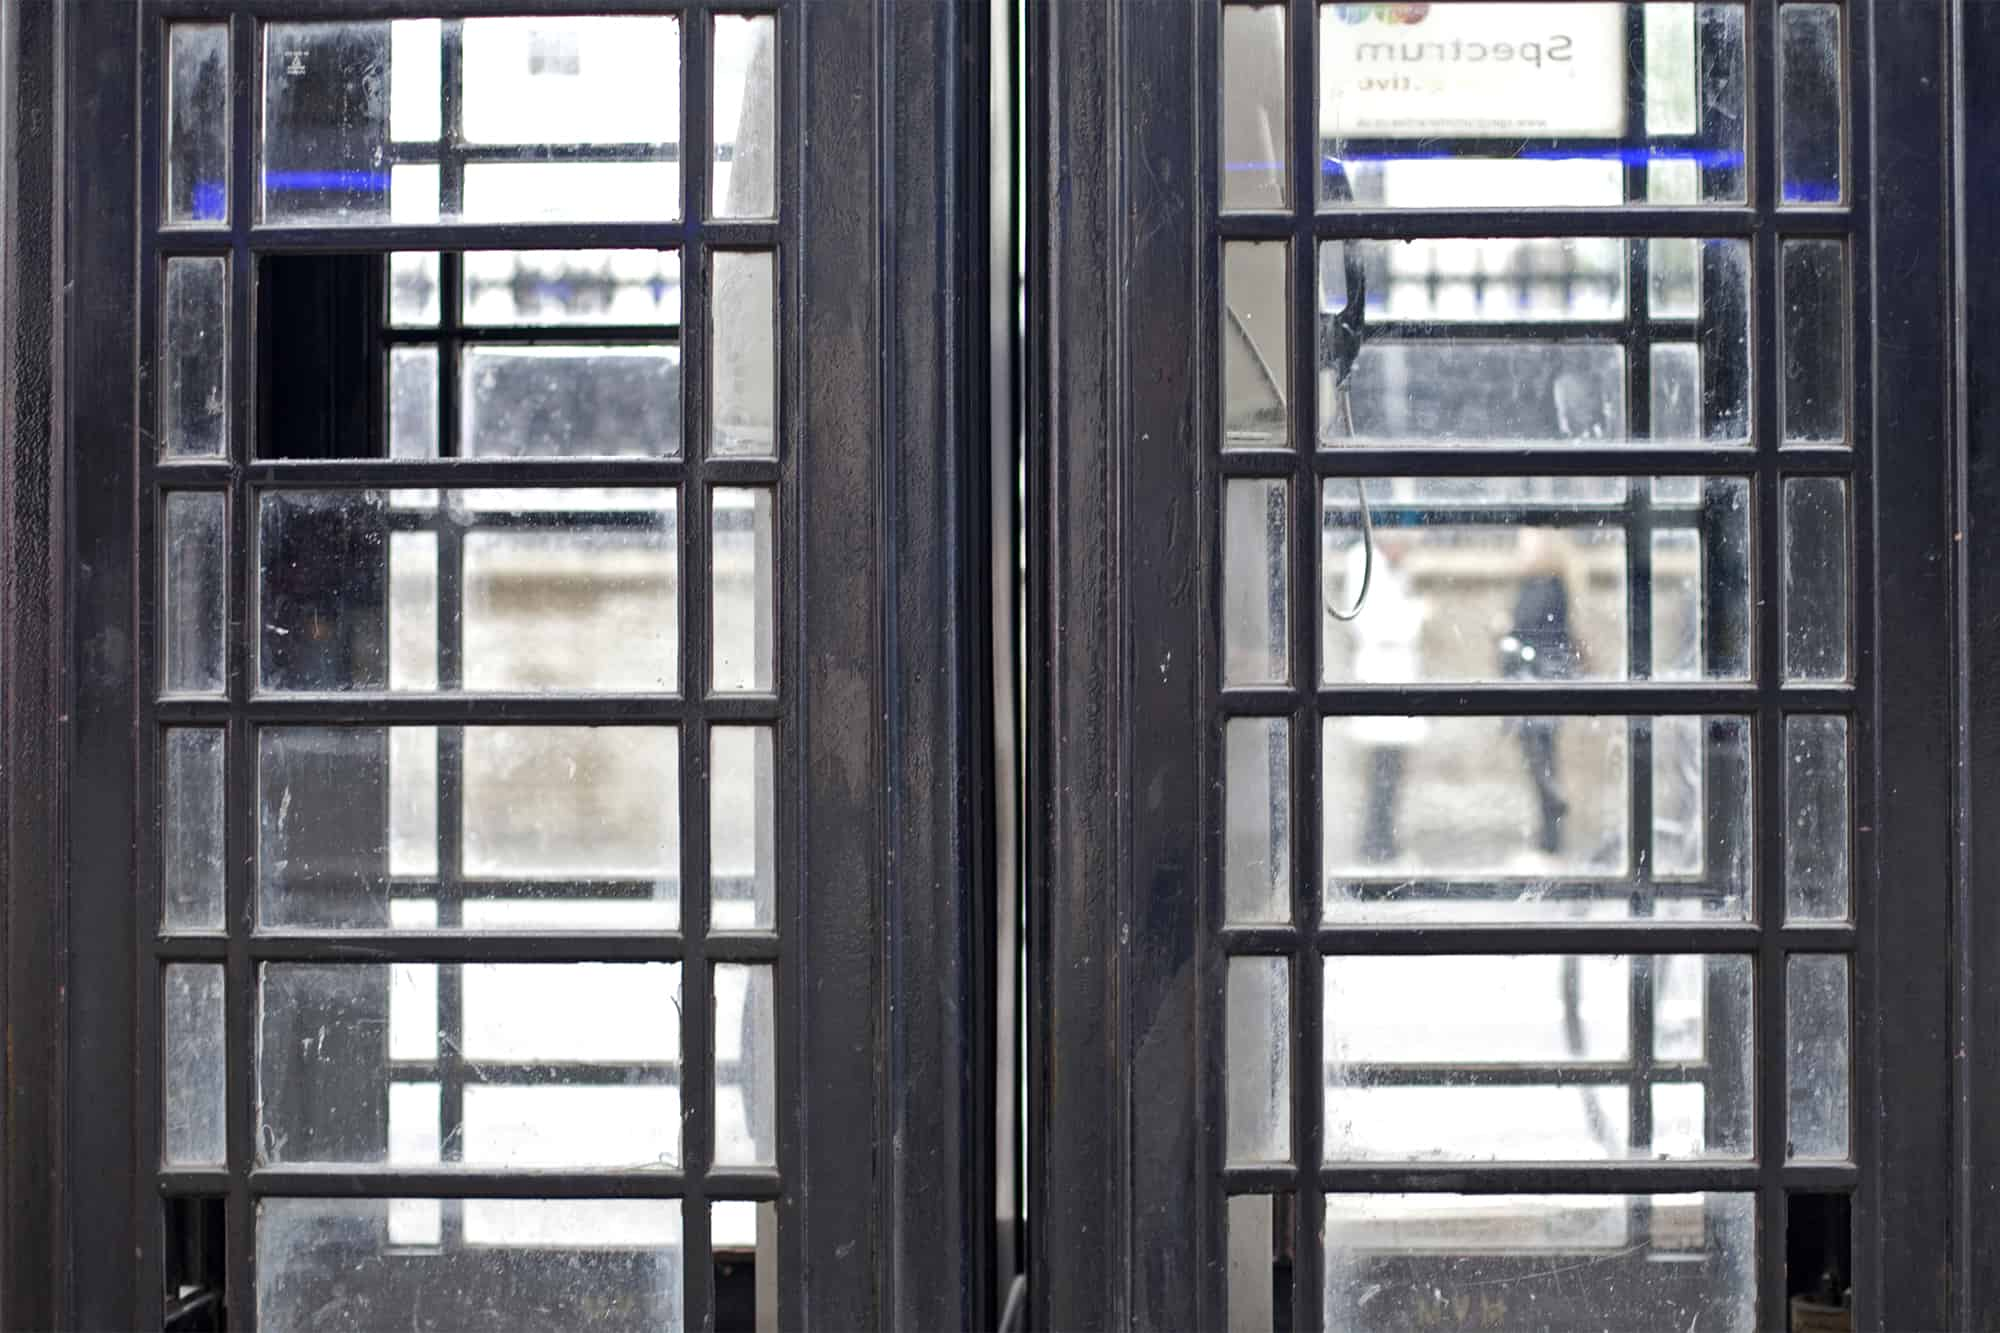 London - Black Telephone Boxes